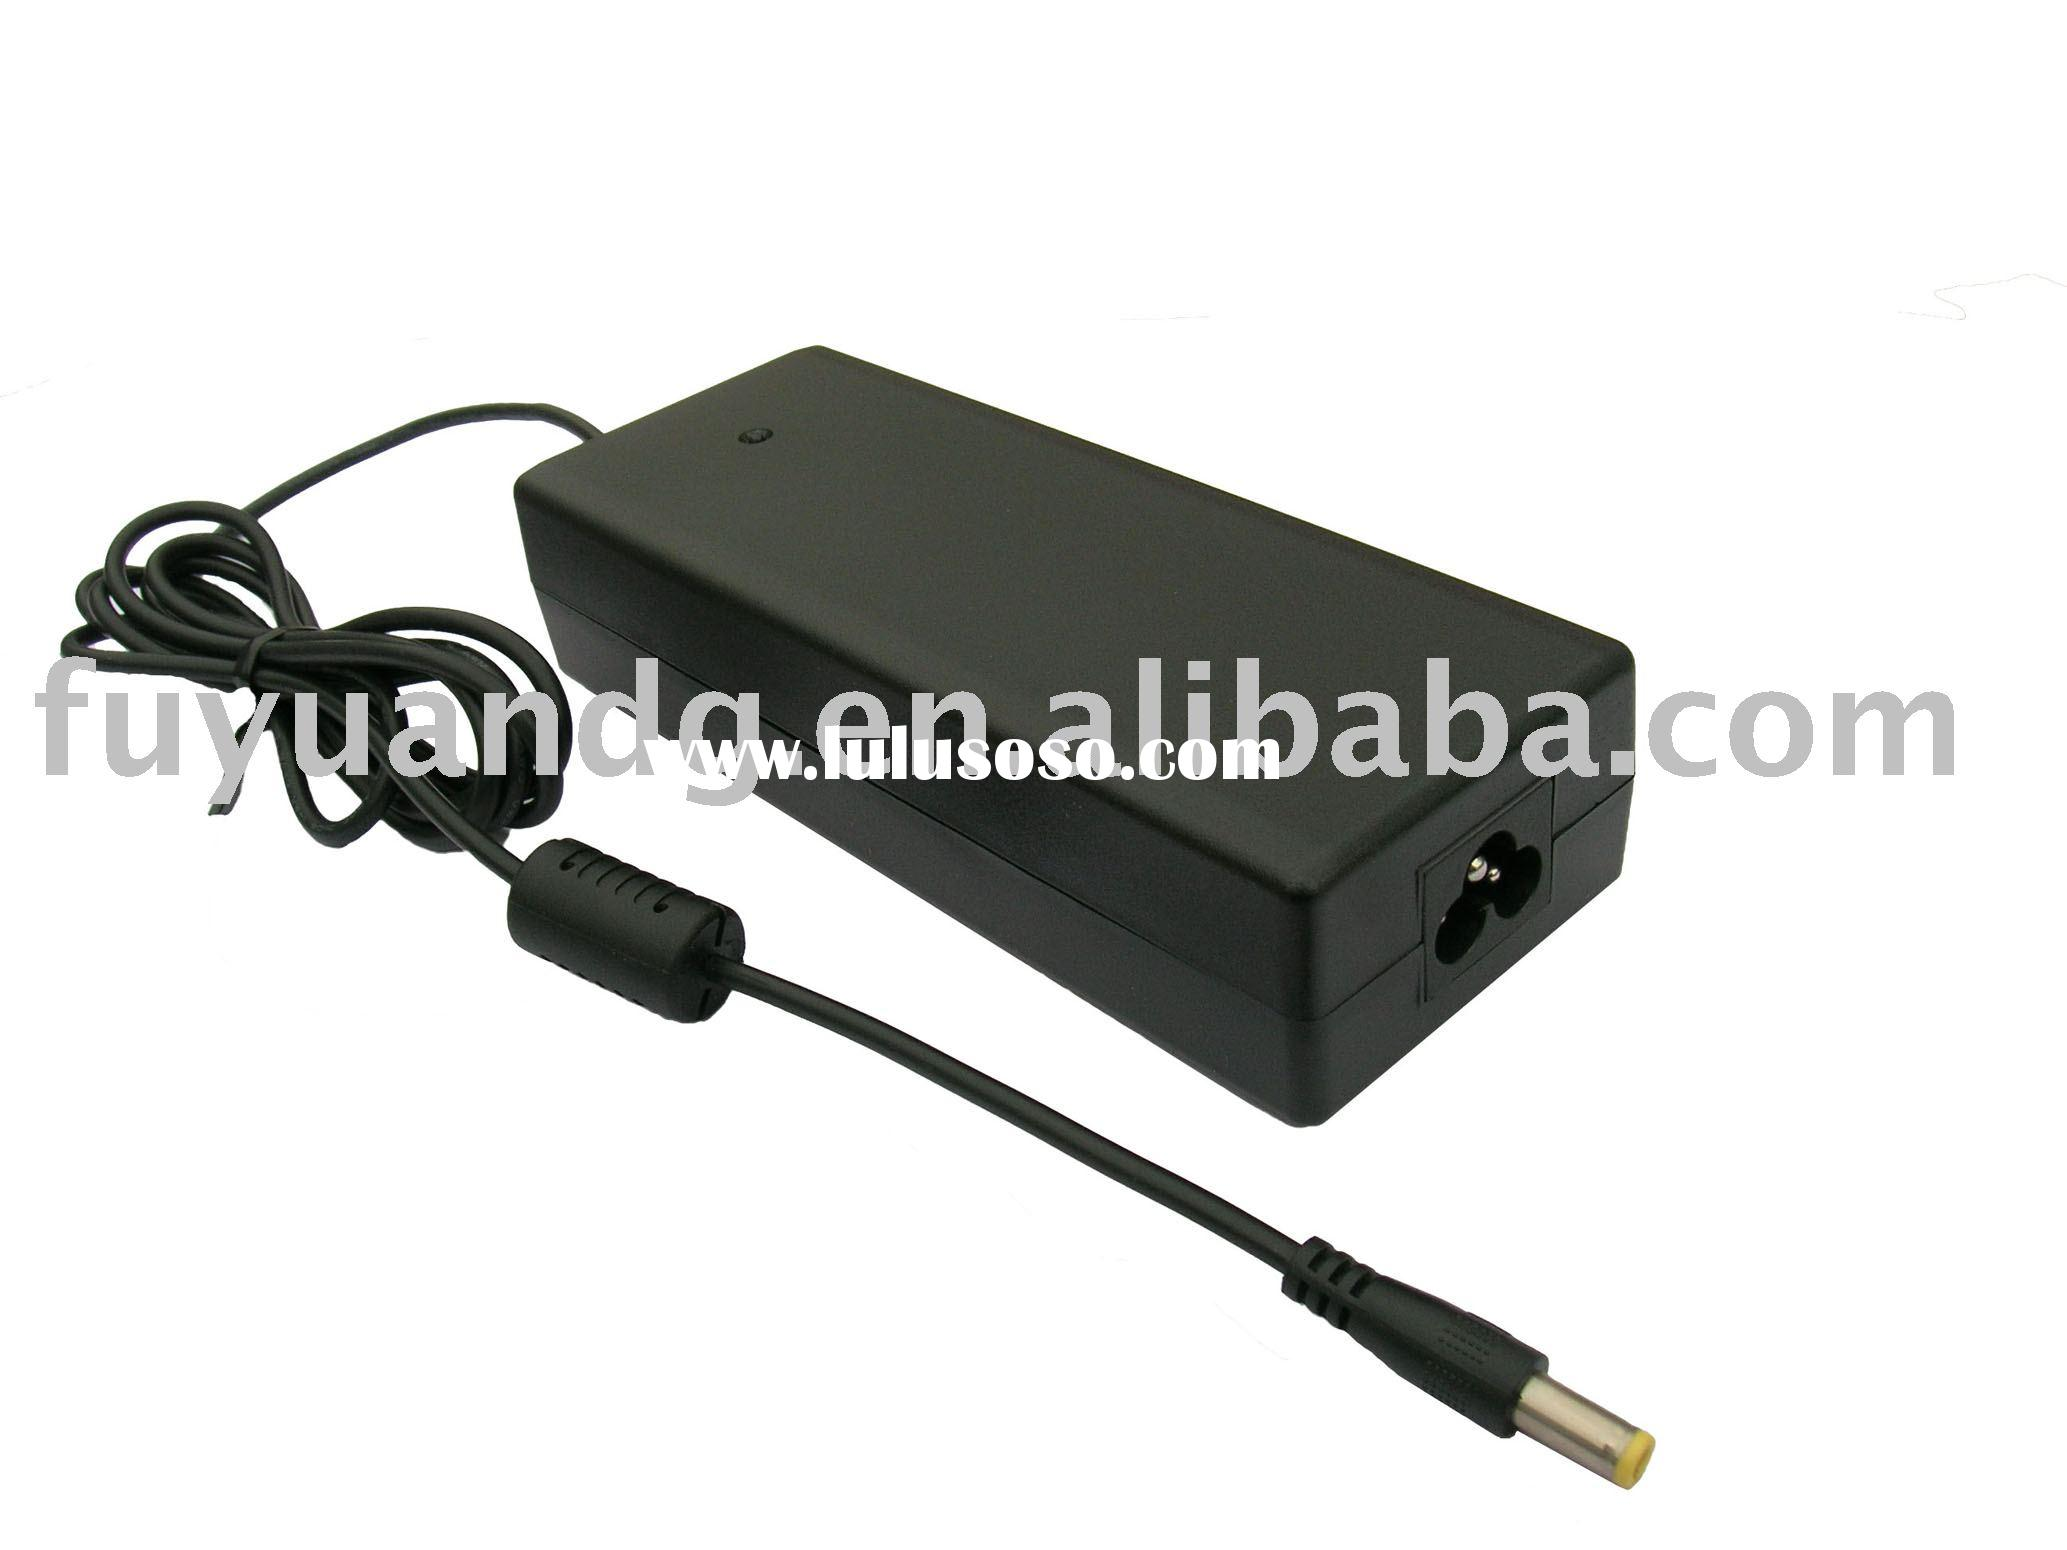 Universal laptop adapter, laptop power adapter, laptop power supply